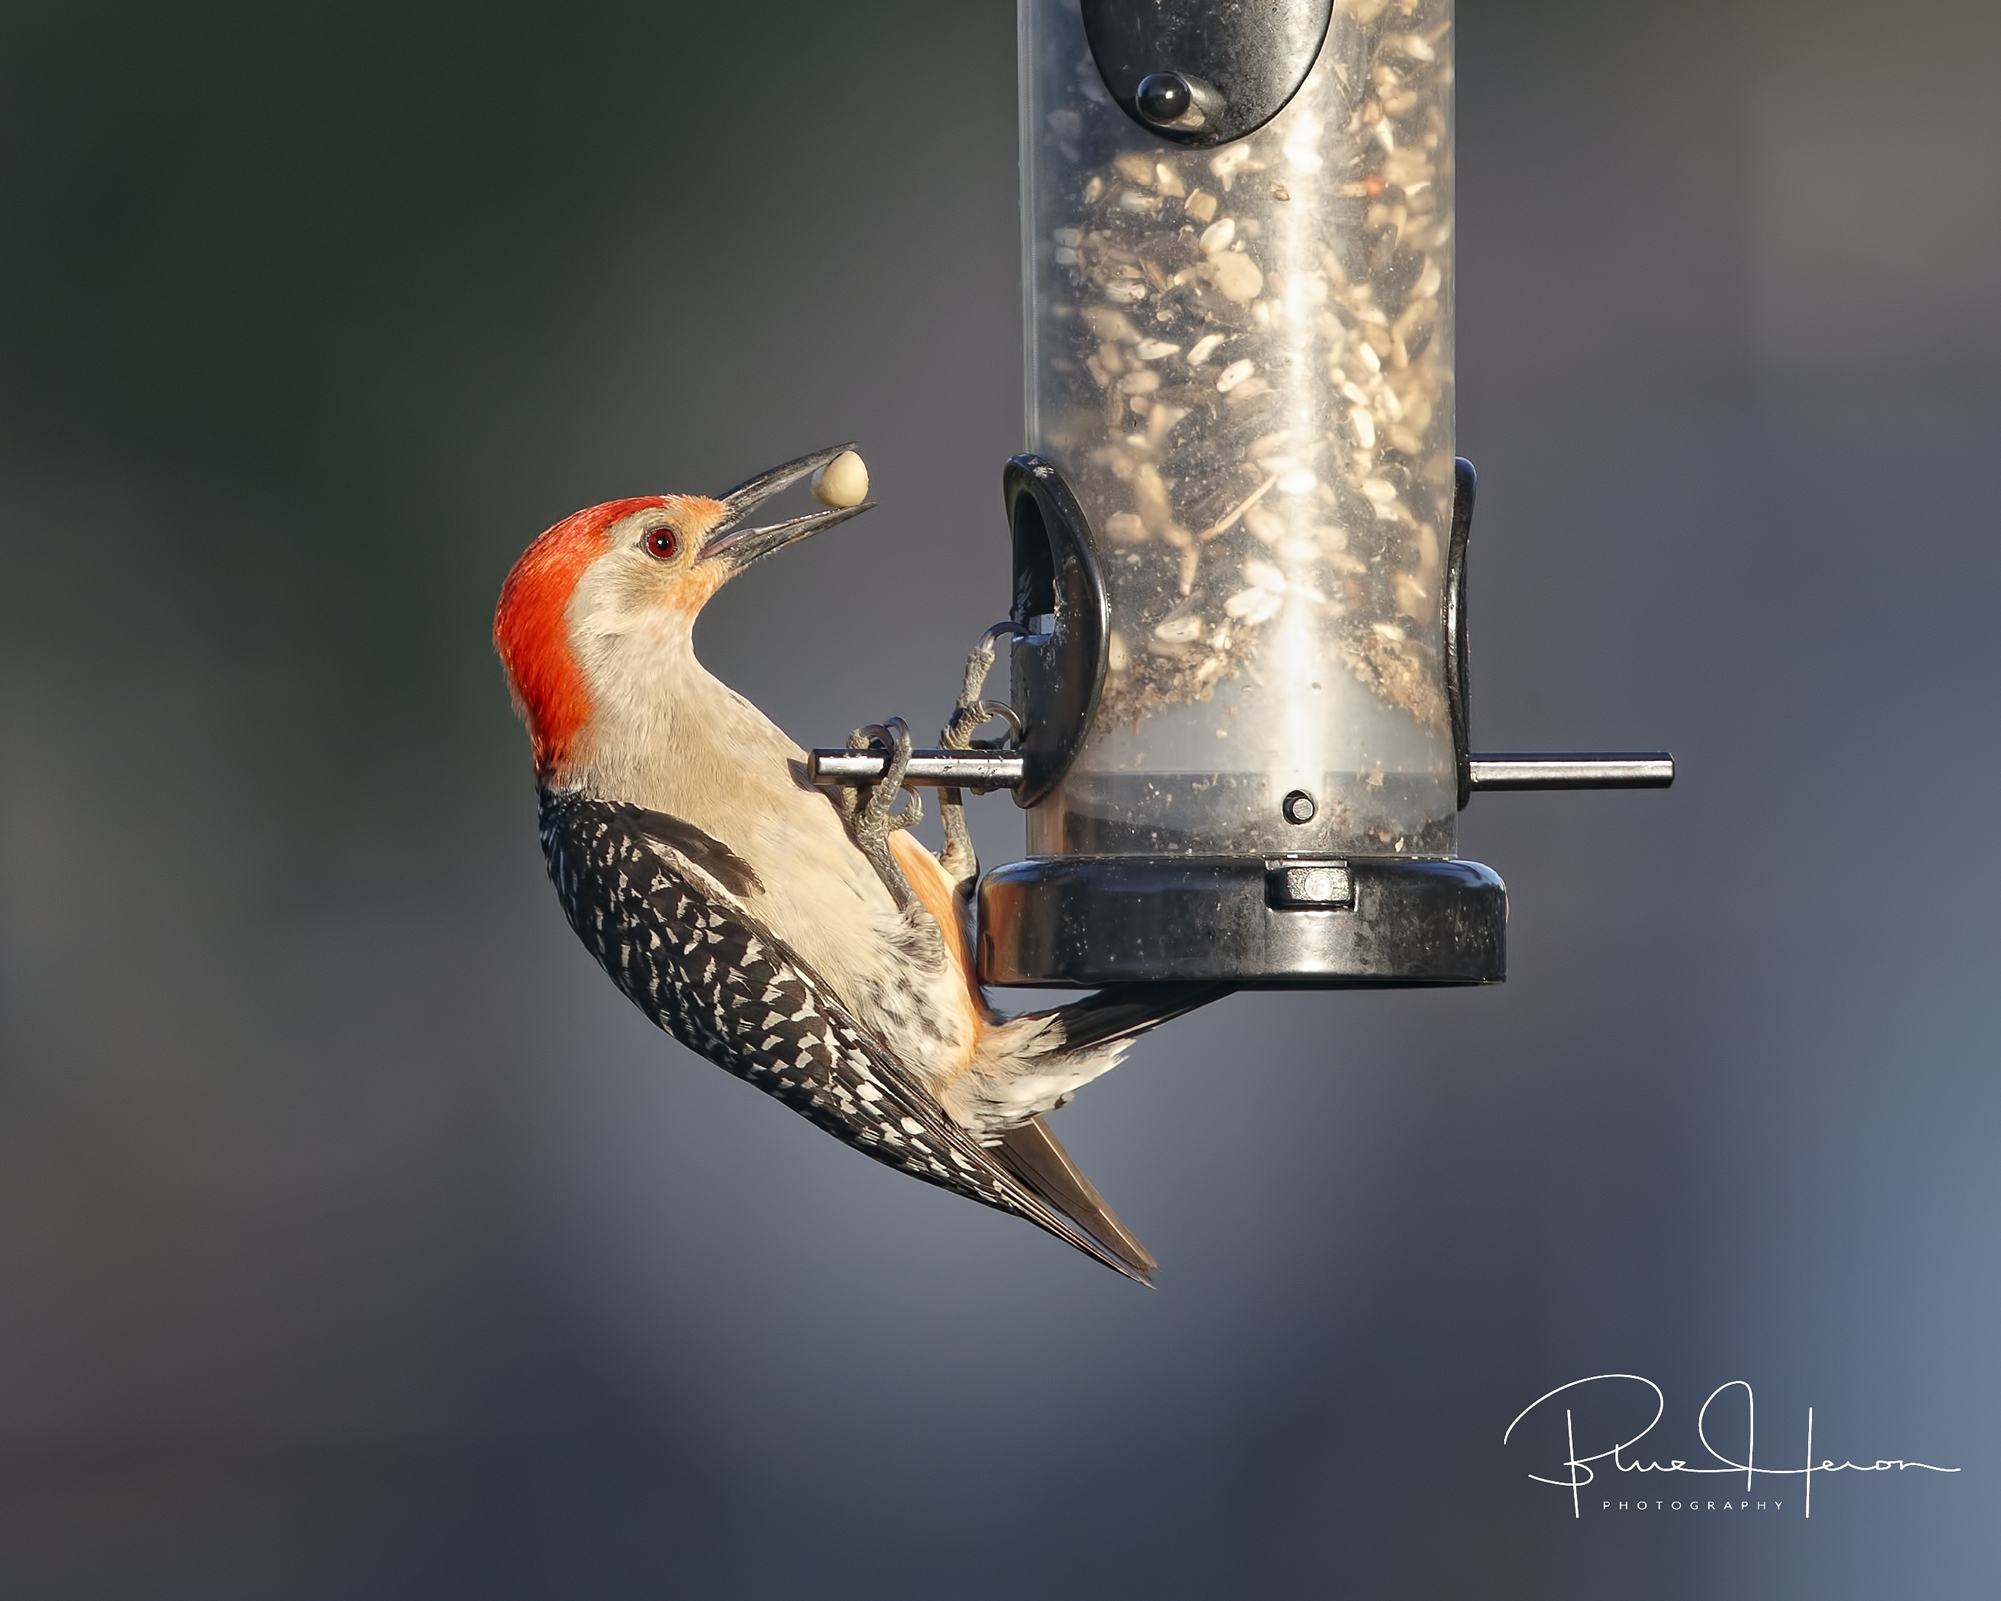 Yippee! Found the peanut!. Red-bellied Woodpecker with the prize